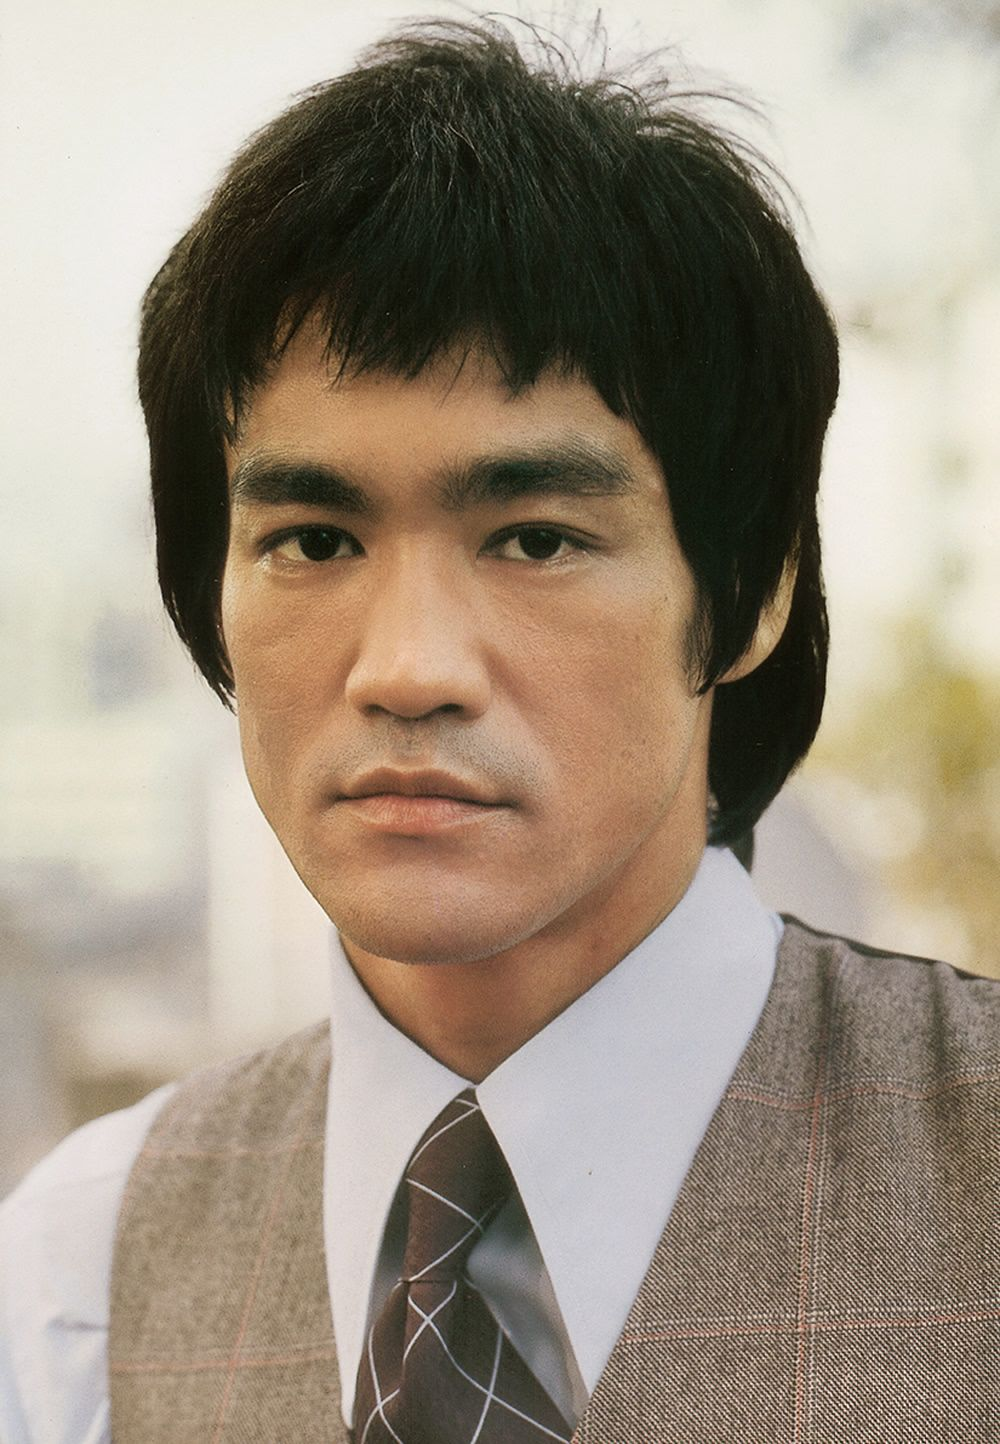 bruce lee москваbruce lee ресторан, bruce lee film, bruce lee video, bruce lee москва, bruce lee киев, bruce lee kino, bruce lee dragon warrior, bruce lee wiki, bruce lee video скачать, bruce lee chuck norris, bruce lee скачать бесплатно, bruce lee height, bruce lee photos, bruce lee foto, bruce lee vikipedi, bruce lee смерть, bruce lee wallpaper, bruce lee death, bruce lee be water, bruce lee haqqinda